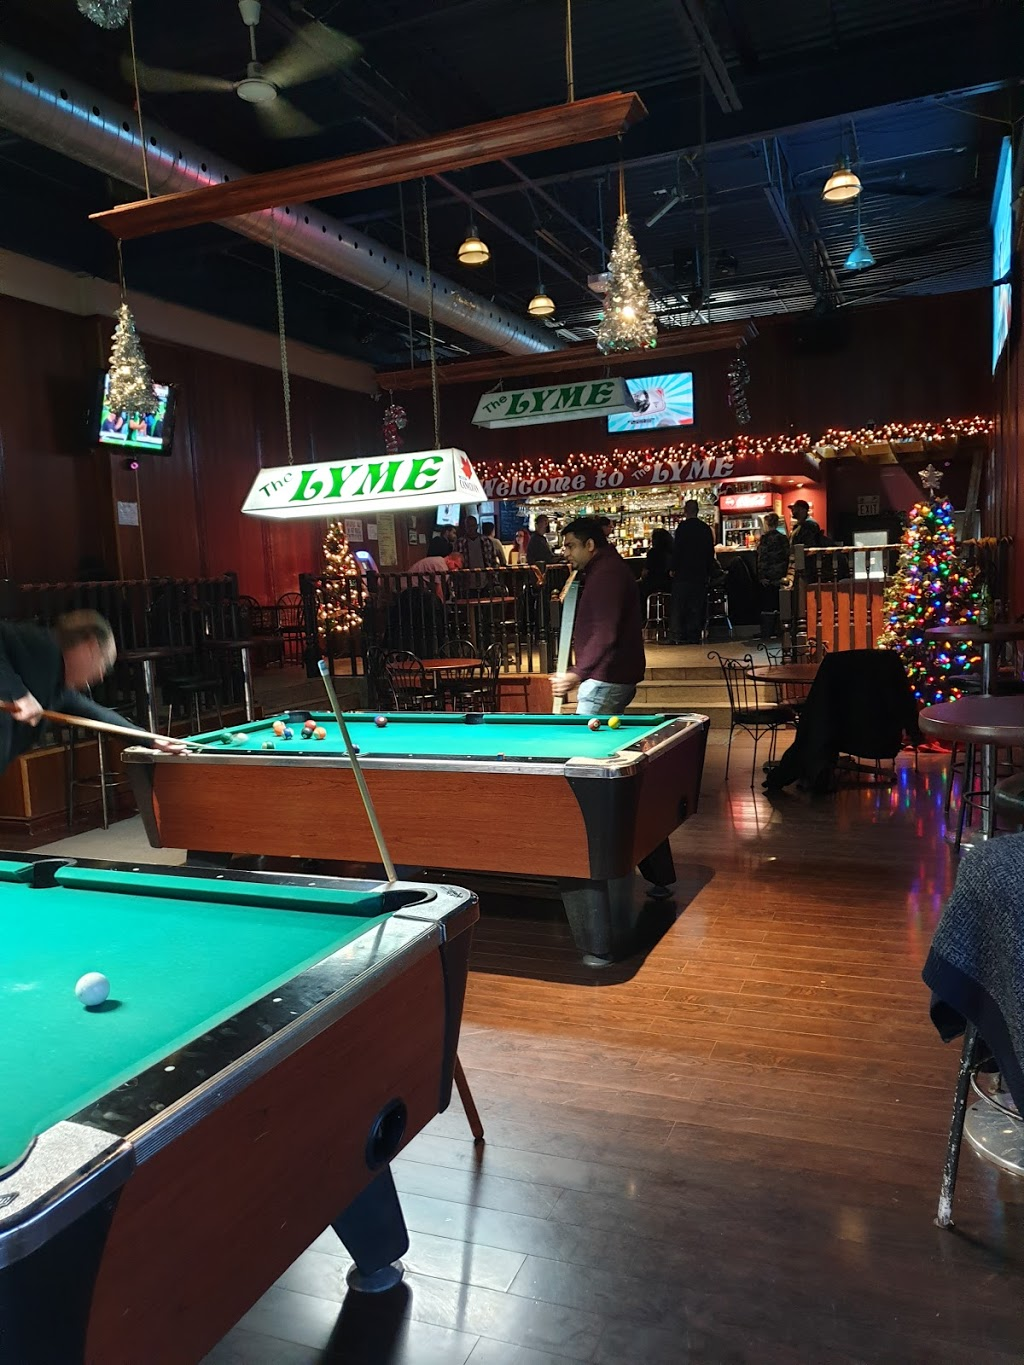 Lyme Pool Lounge The   restaurant   5310 Finch Ave E, Scarborough, ON M1S 5E8, Canada   4163357400 OR +1 416-335-7400